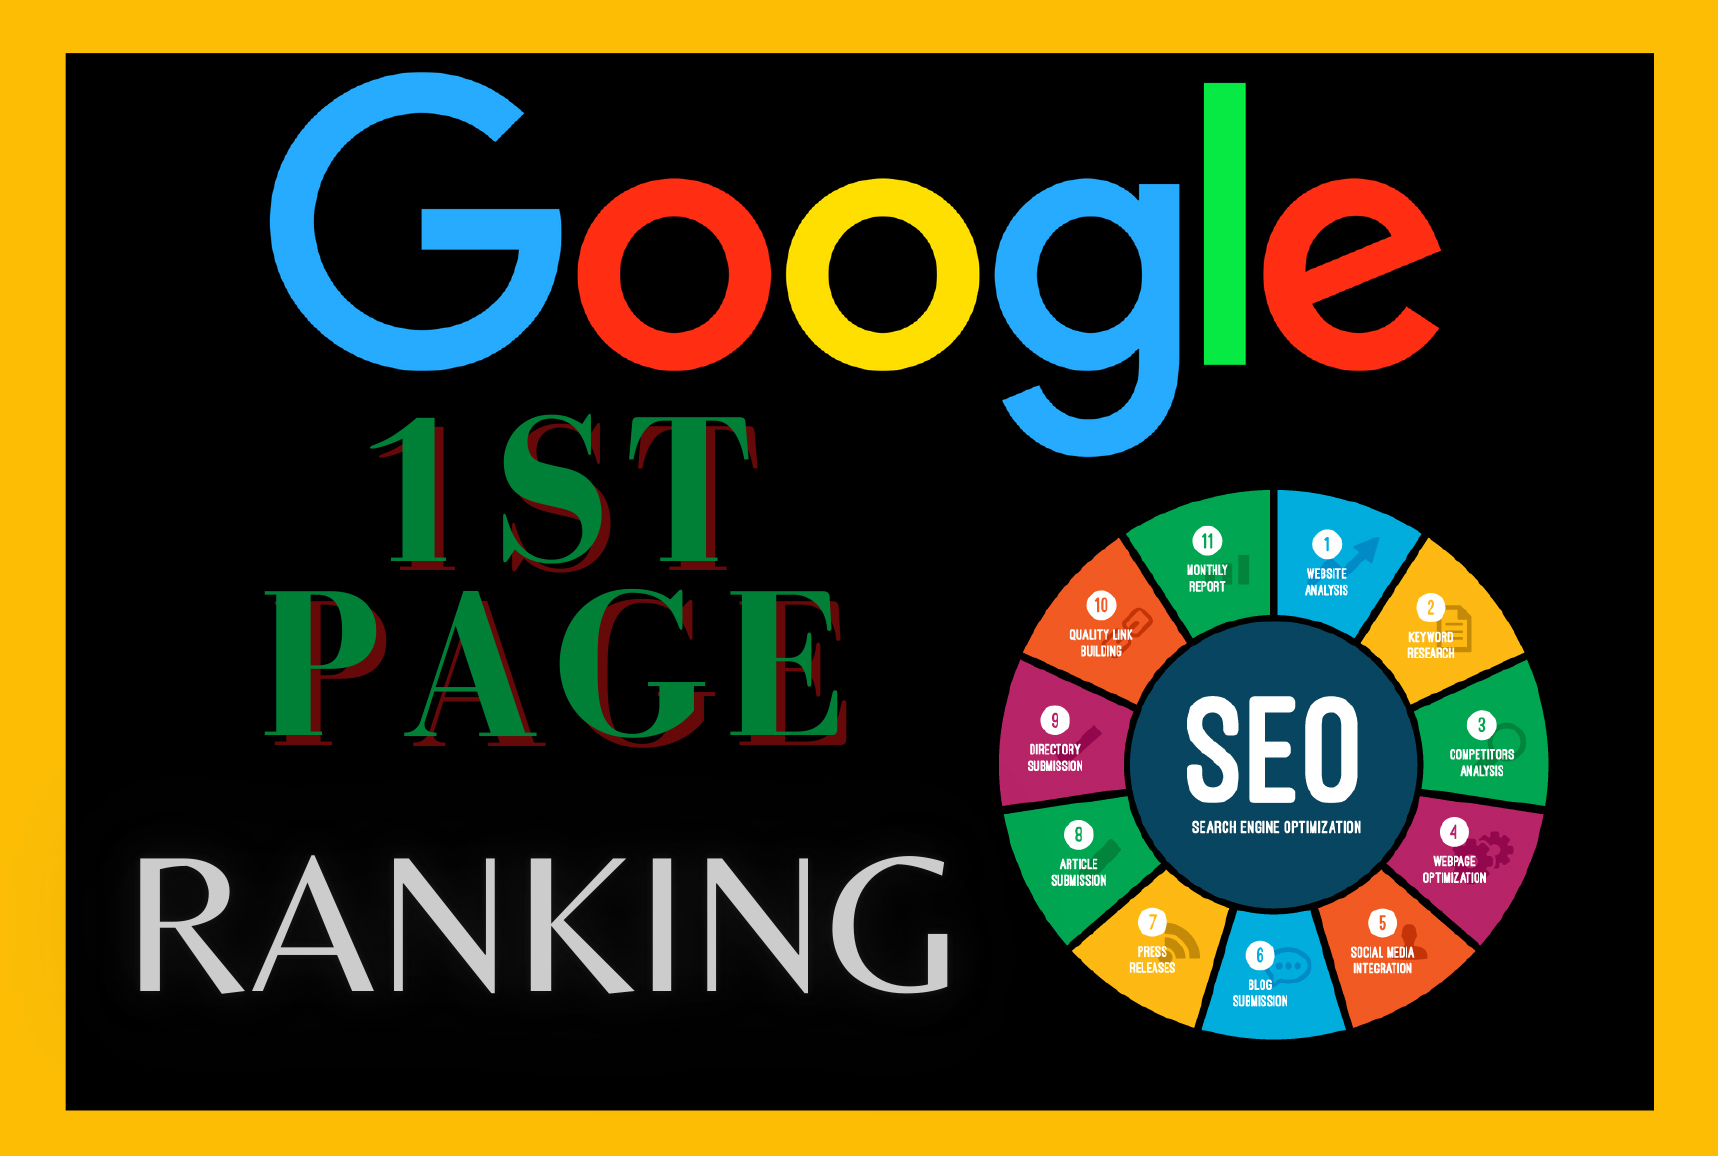 Guaranteed Google 1st page ranking for Targeted Traffic